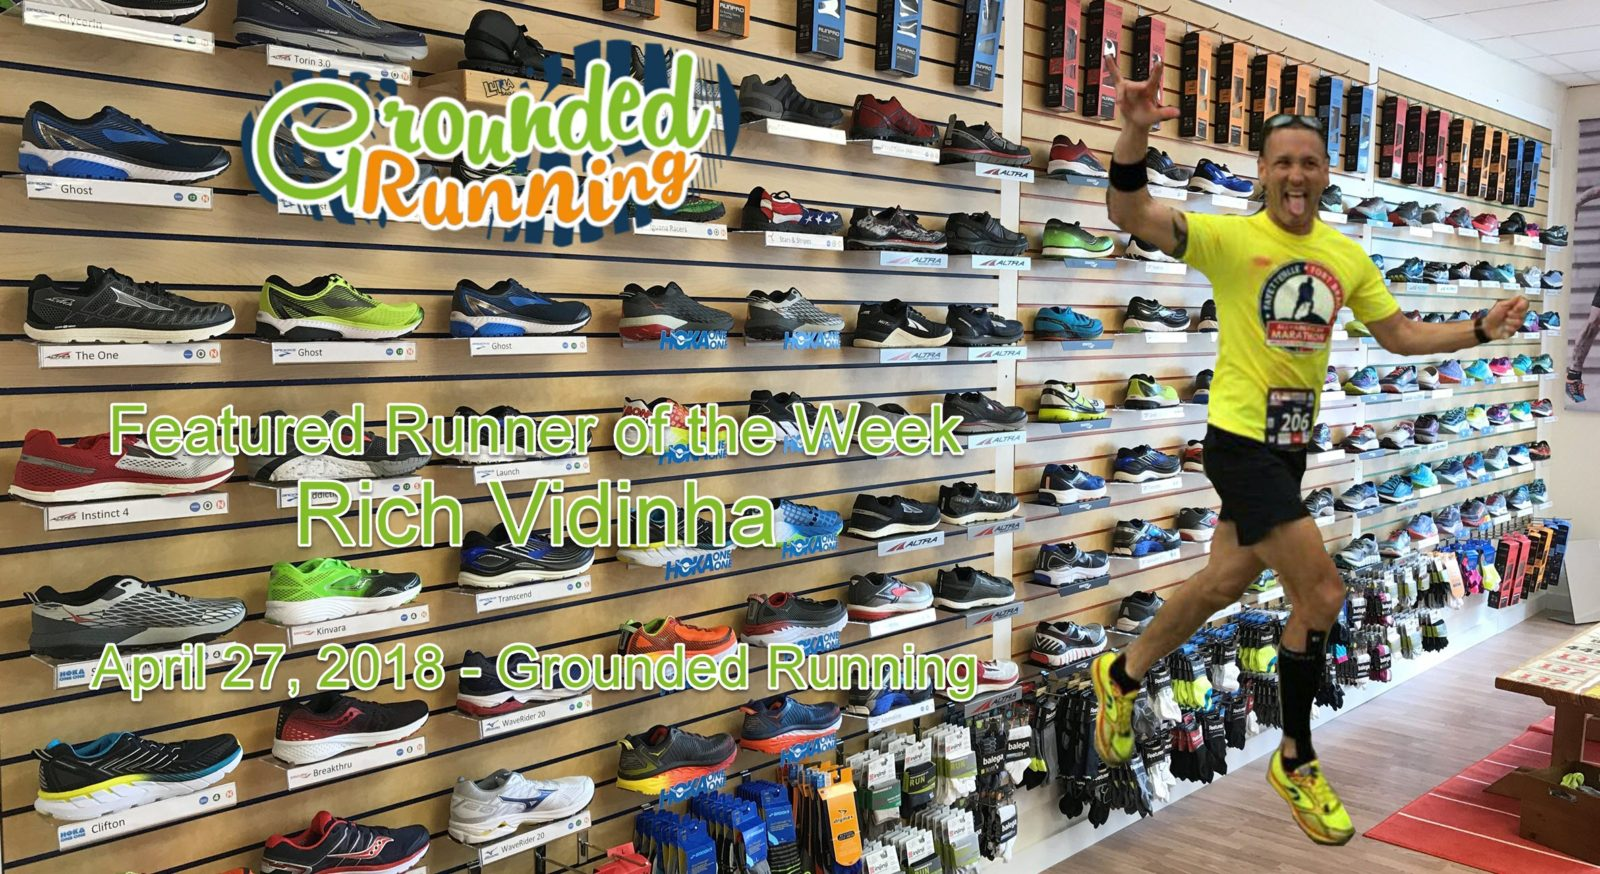 Rich Vidinha - Featured Runner of the Week